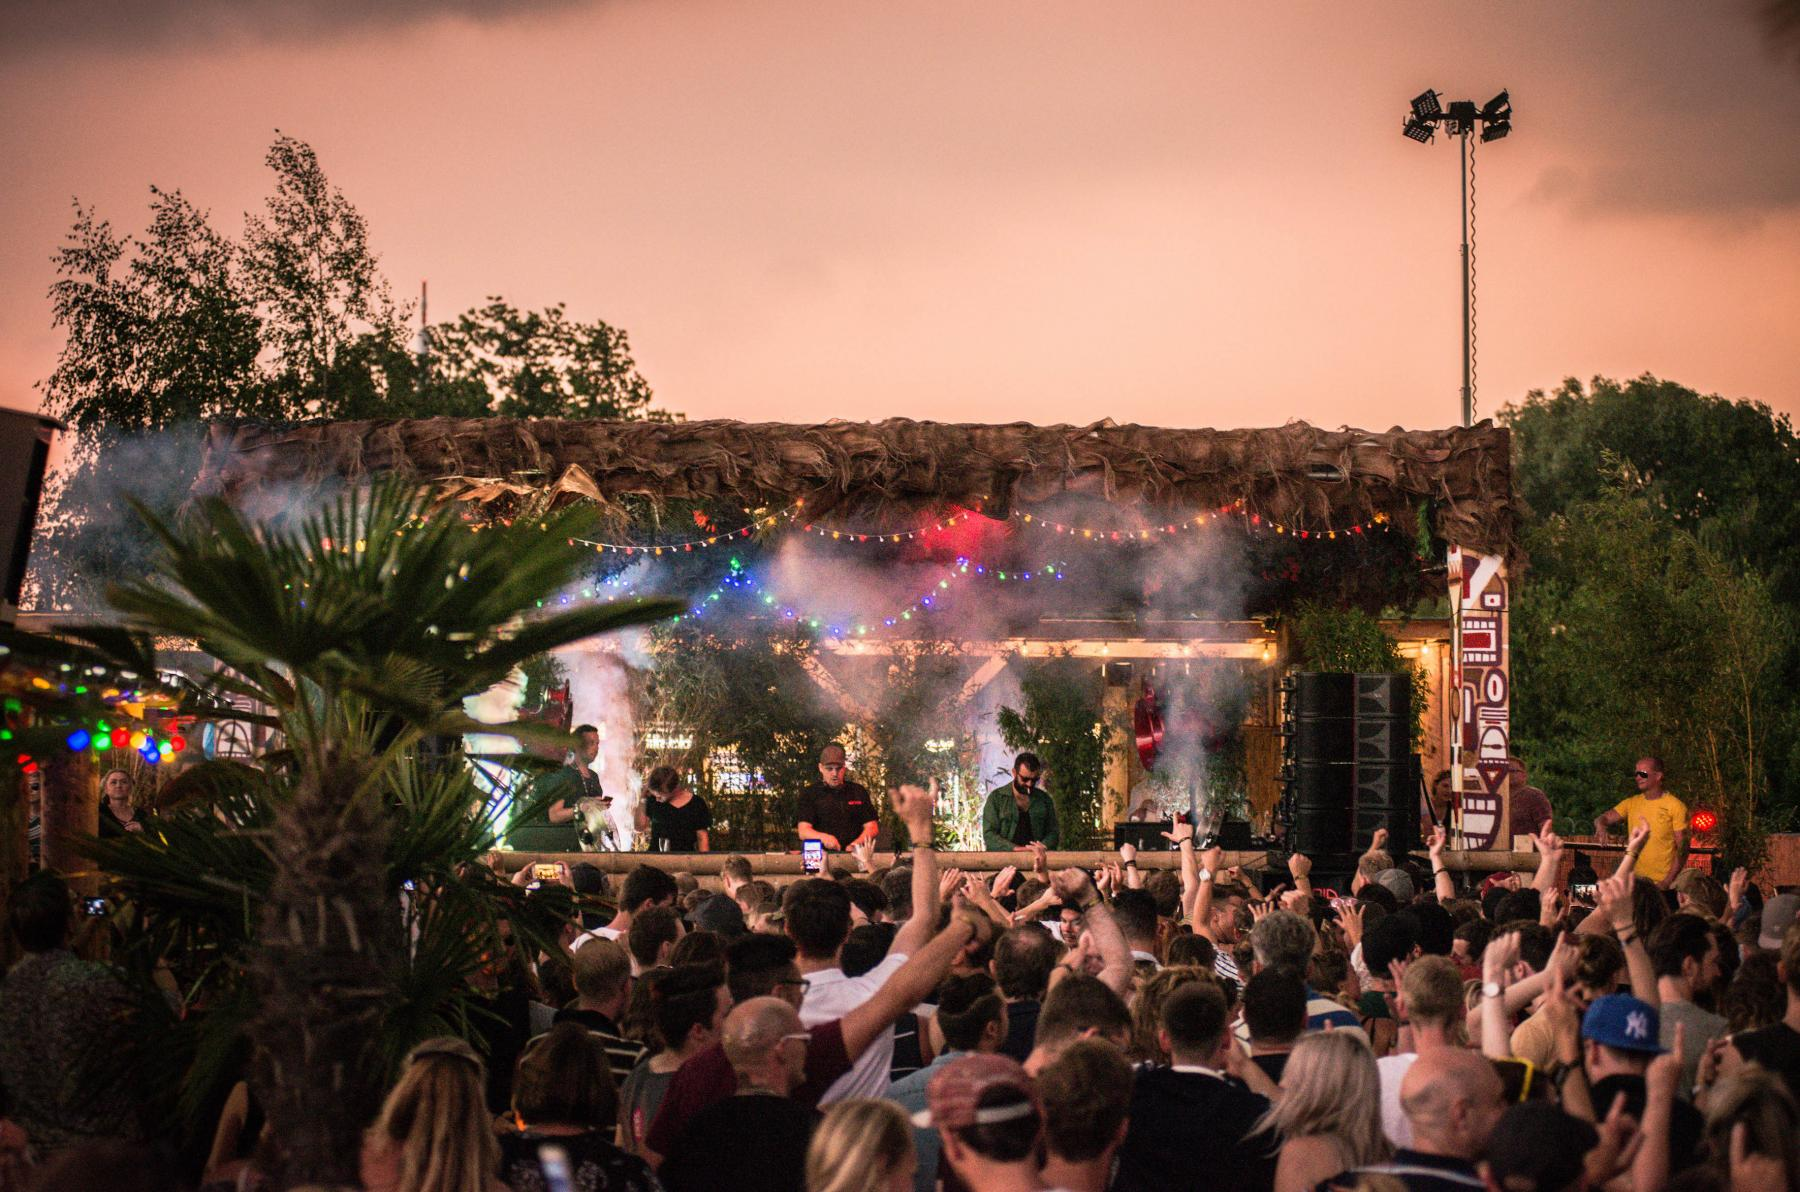 Don't miss the 1st lineup wave! Photo Credit to Nils Heede